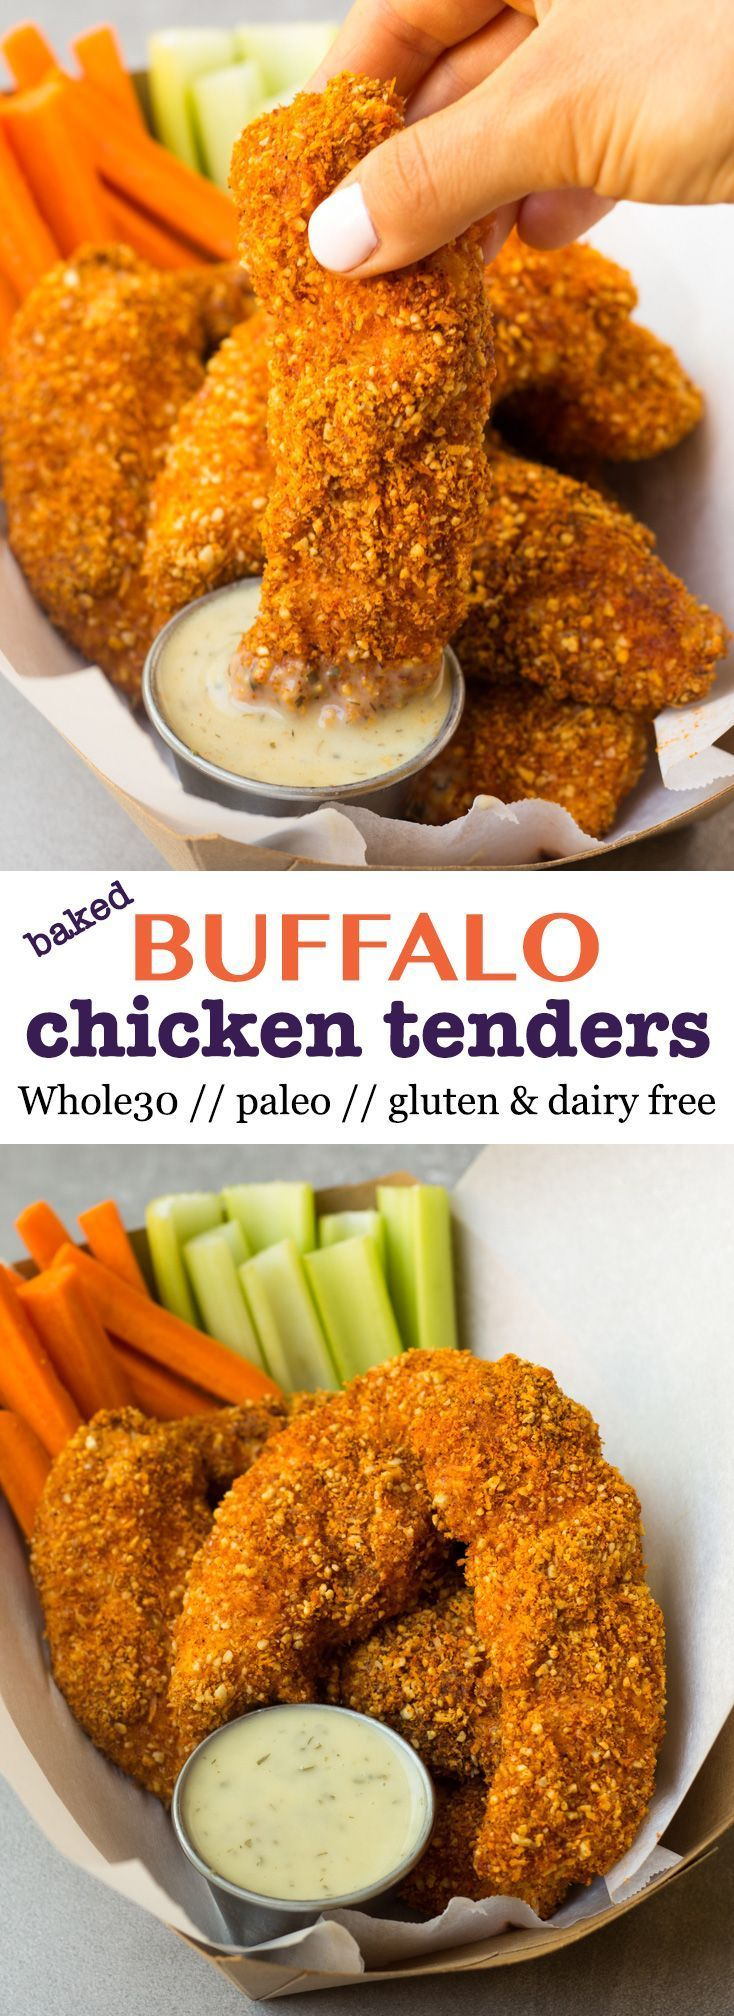 Whole30 Buffalo Chicken Tenders Recipe Clean Eating